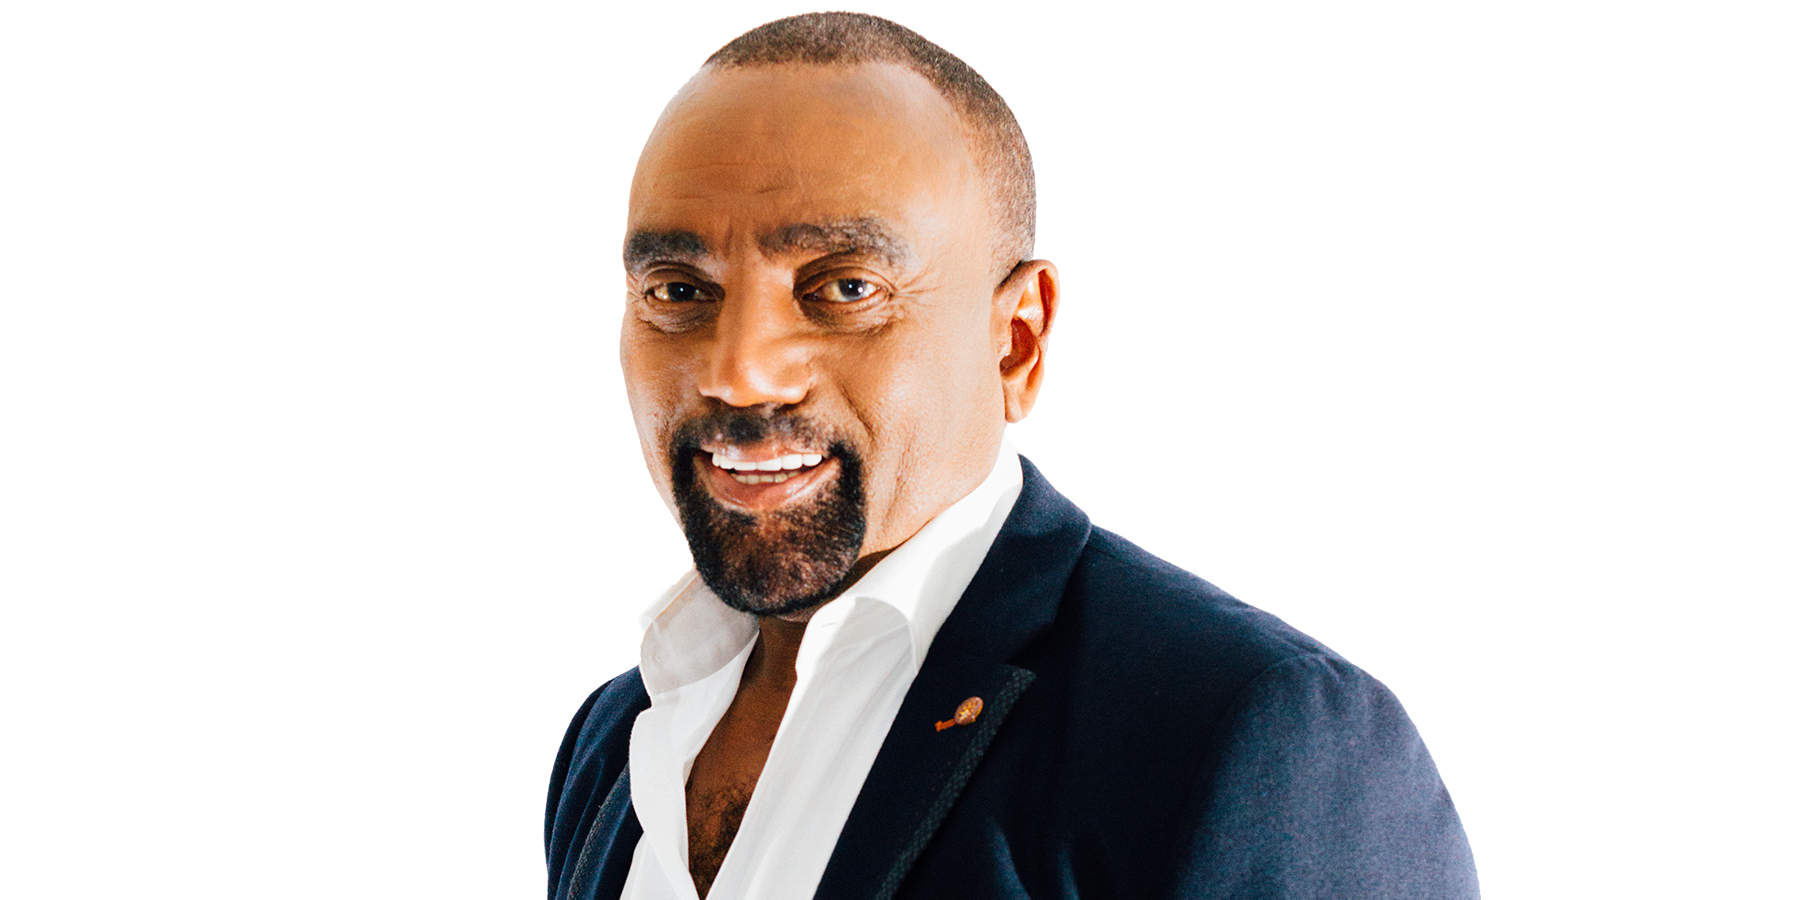 VIDEO] Jesse Lee Peterson on SonLife Broadcasting with